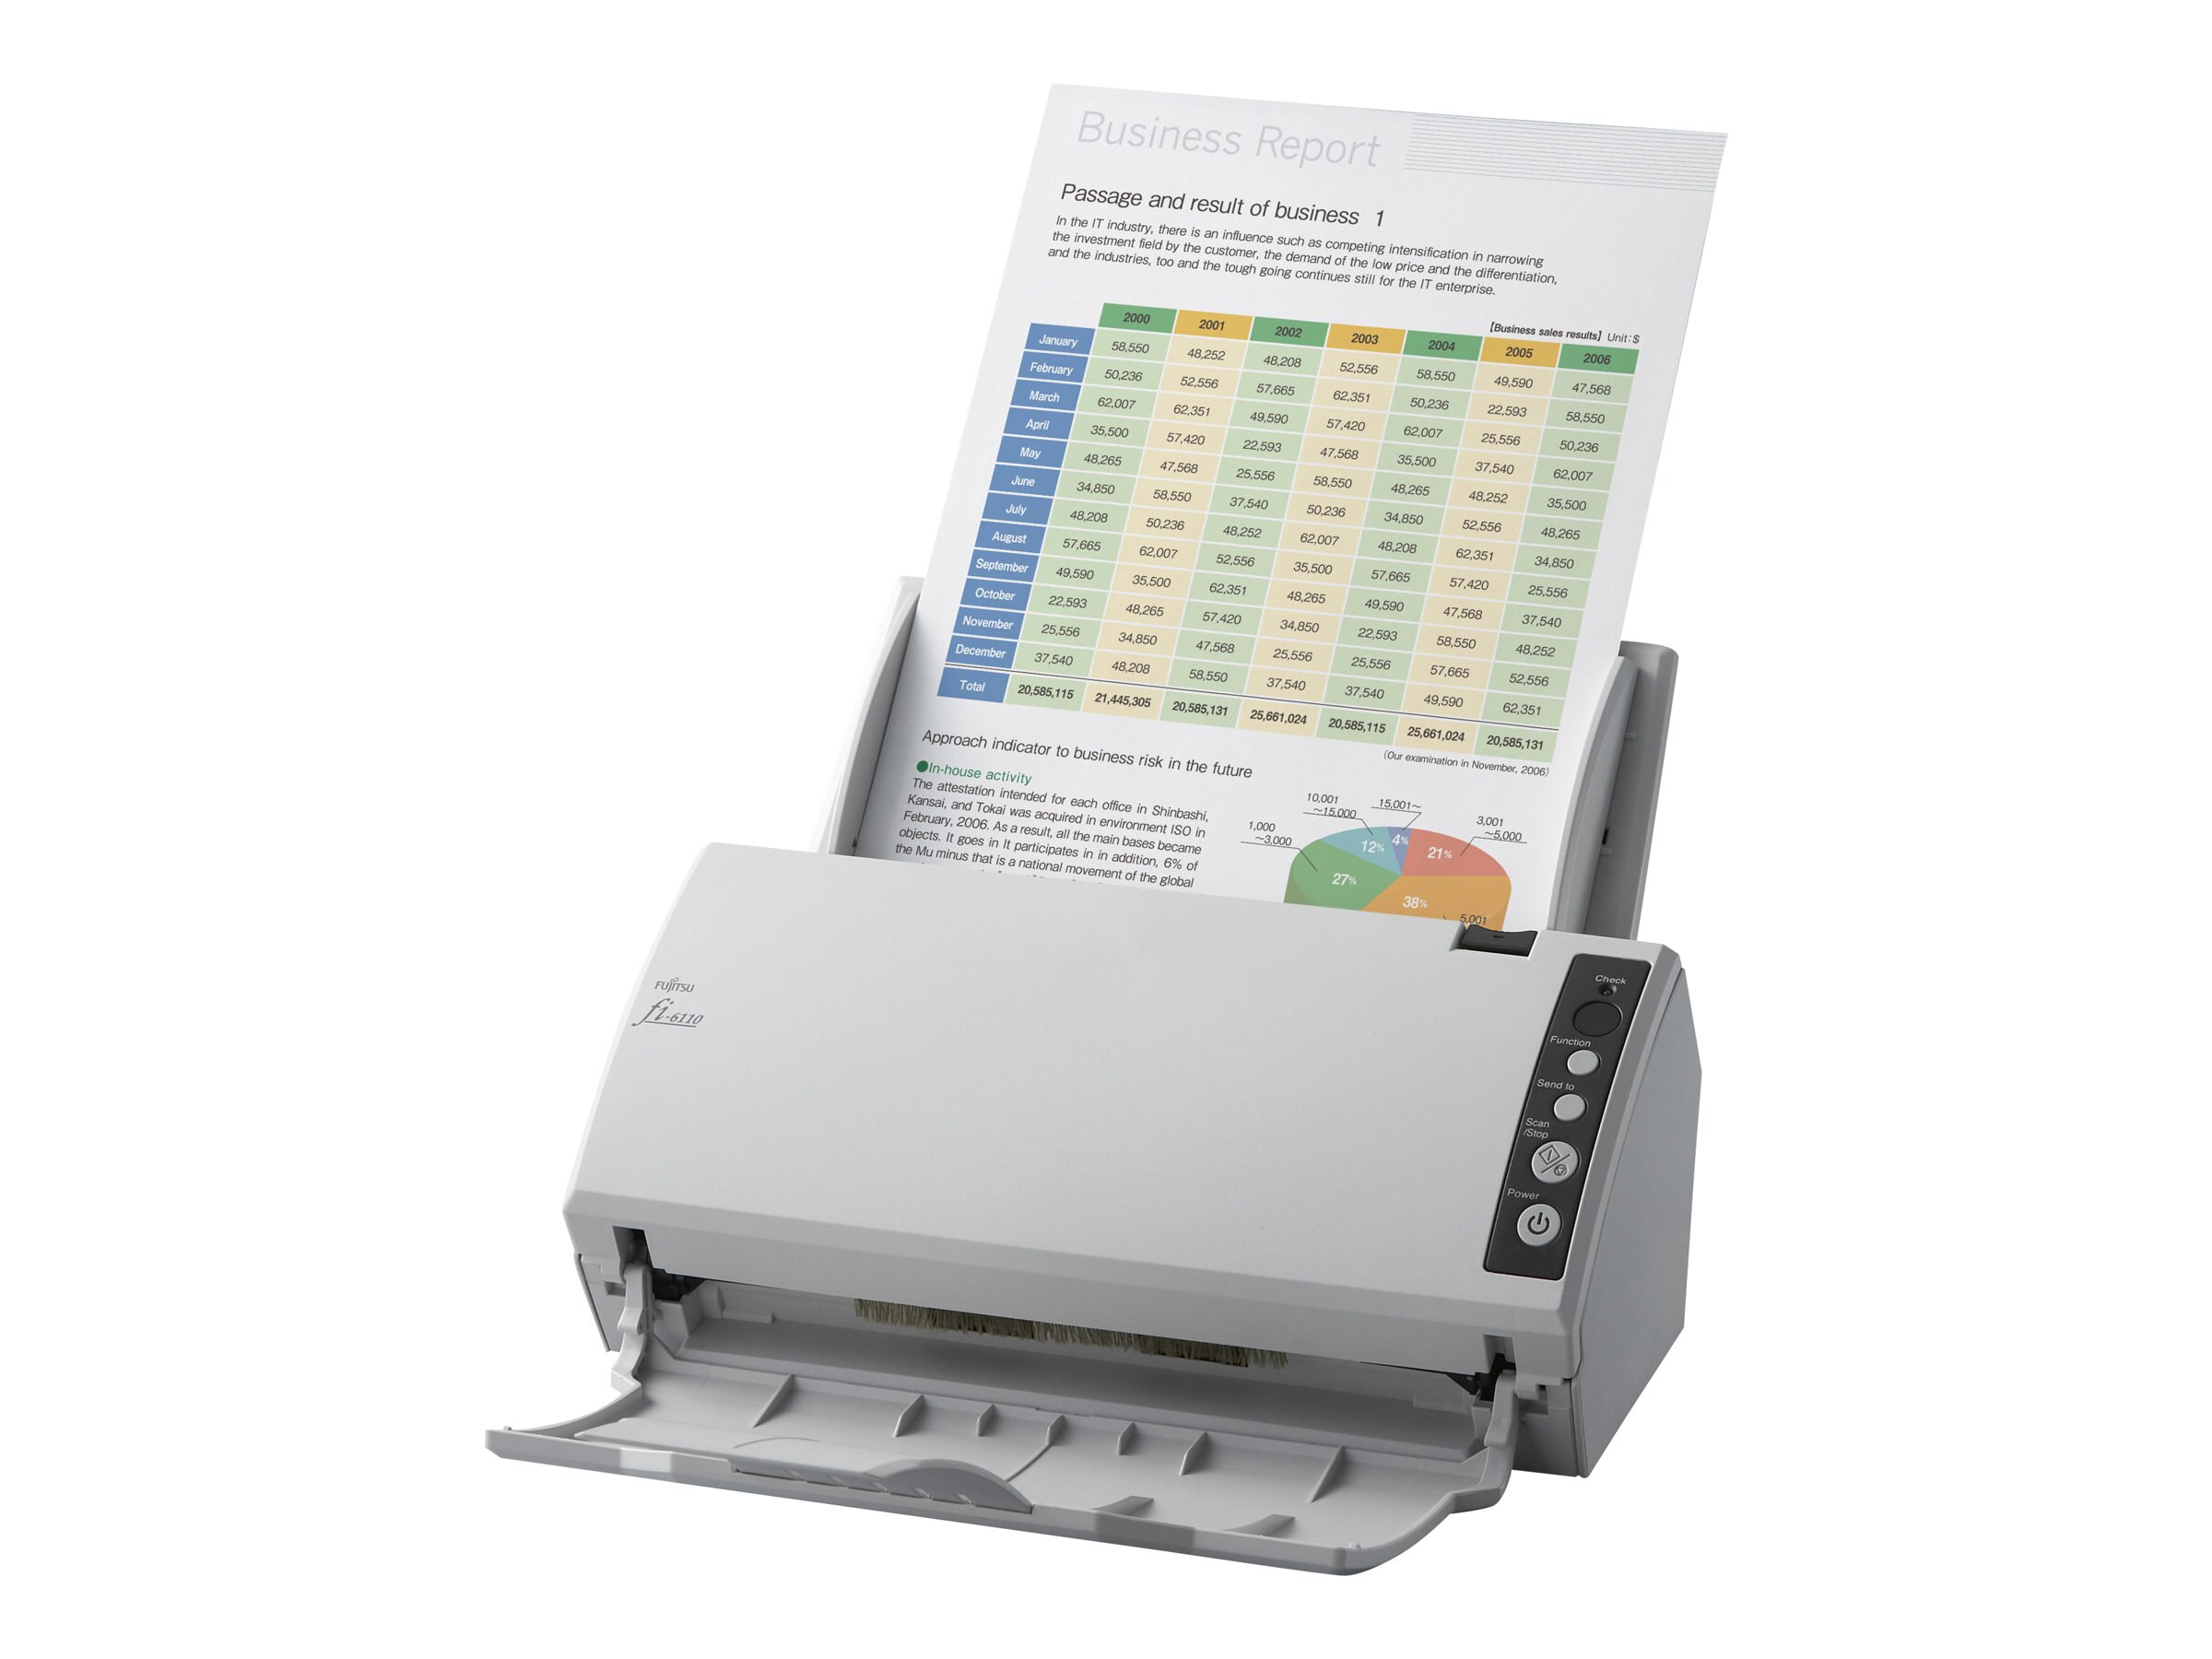 Fujitsu FI-6110 Color Production Sheetfed Scanner, PaperStream, PA03607-B065, 16780427, Scanners